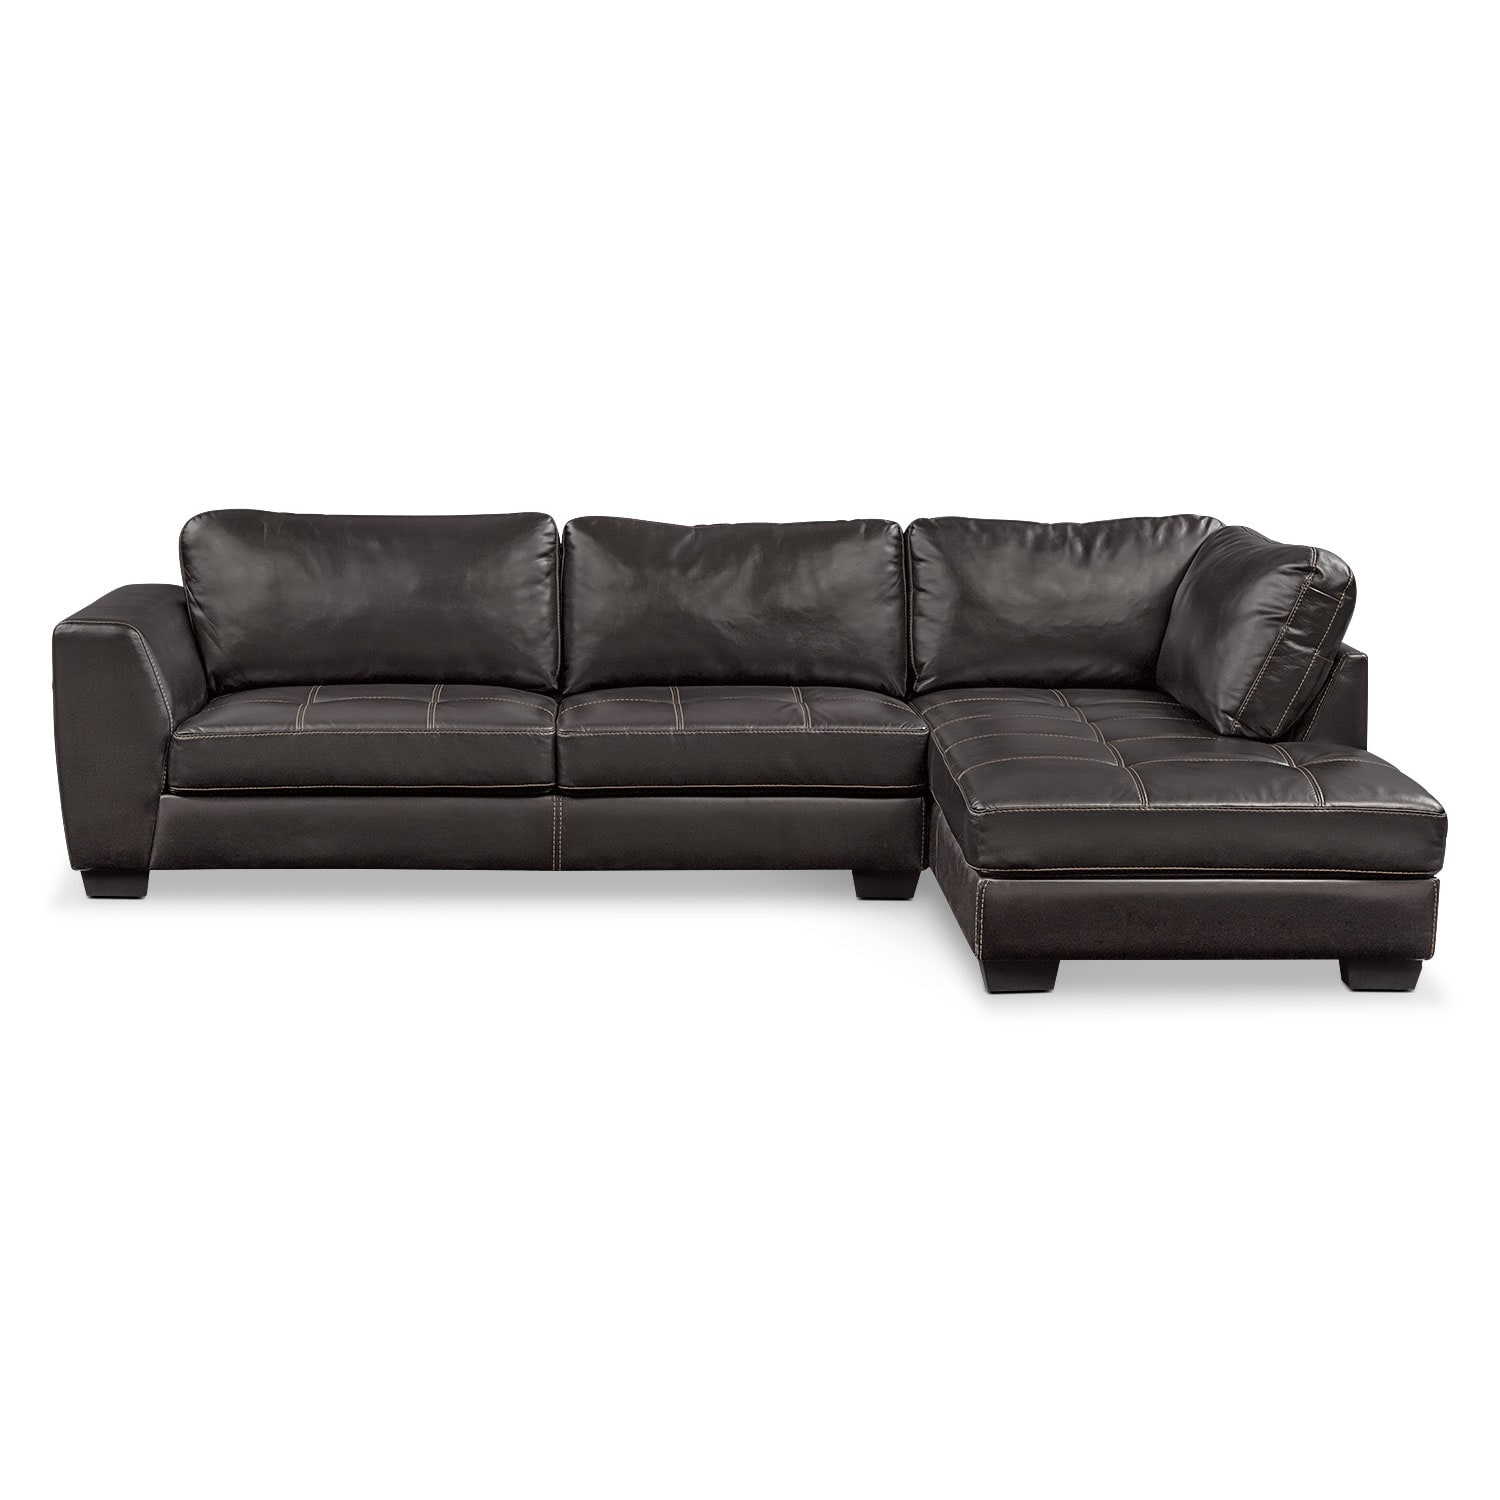 Santana 2-Piece Sectional with Chaise | Value City Furniture and ...